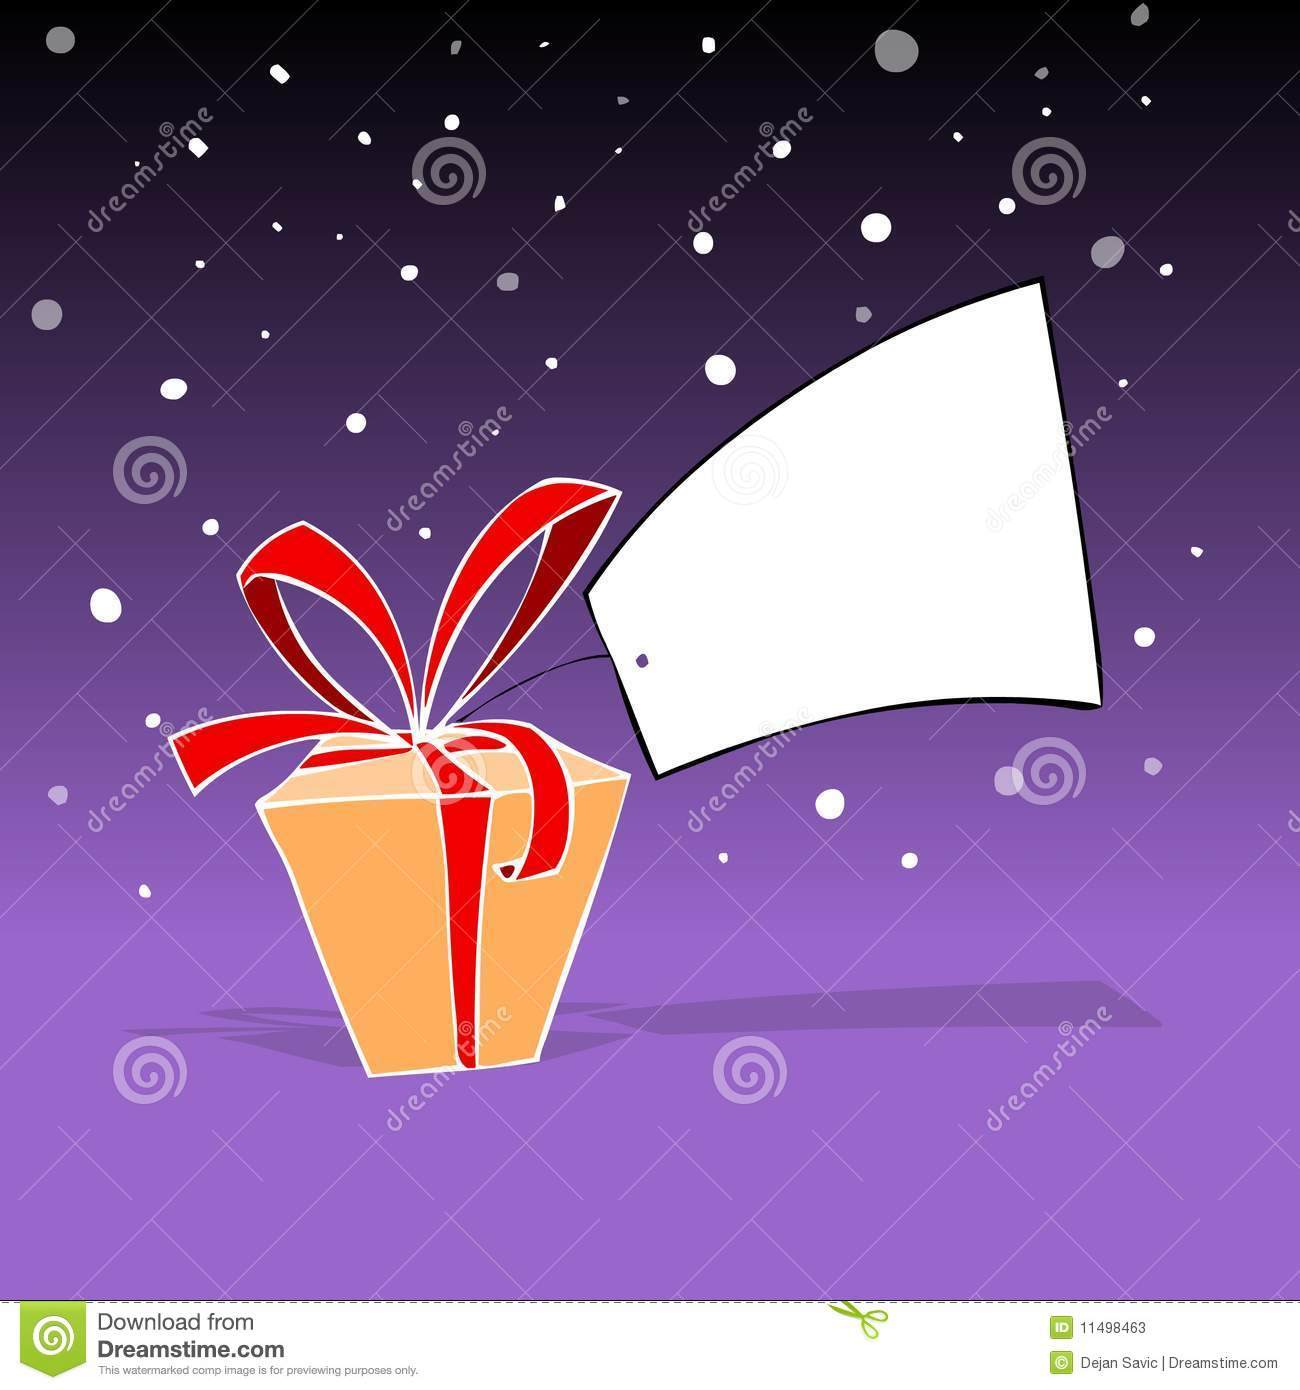 Download New year gift box stock illustration. Illustration of drawing - 11498463